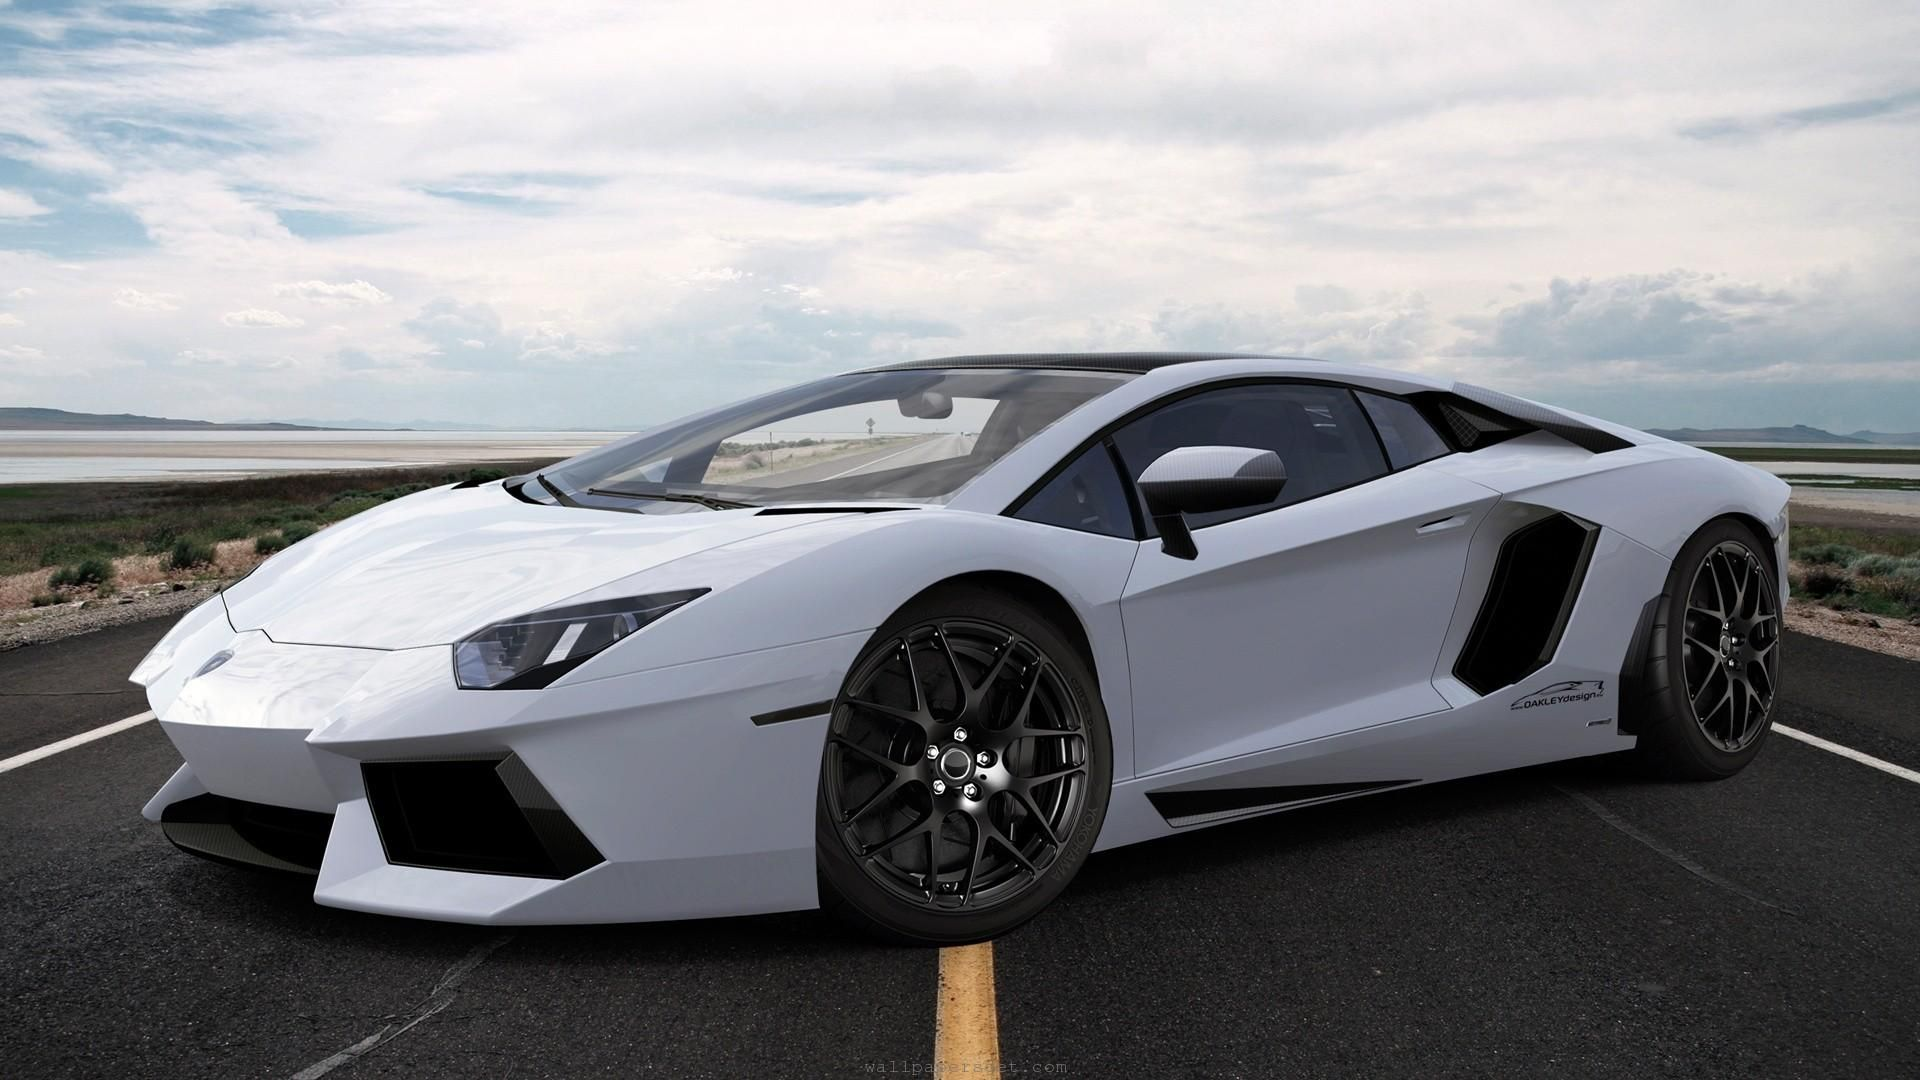 2014 Lamborghini Aventador HD Wallpaper